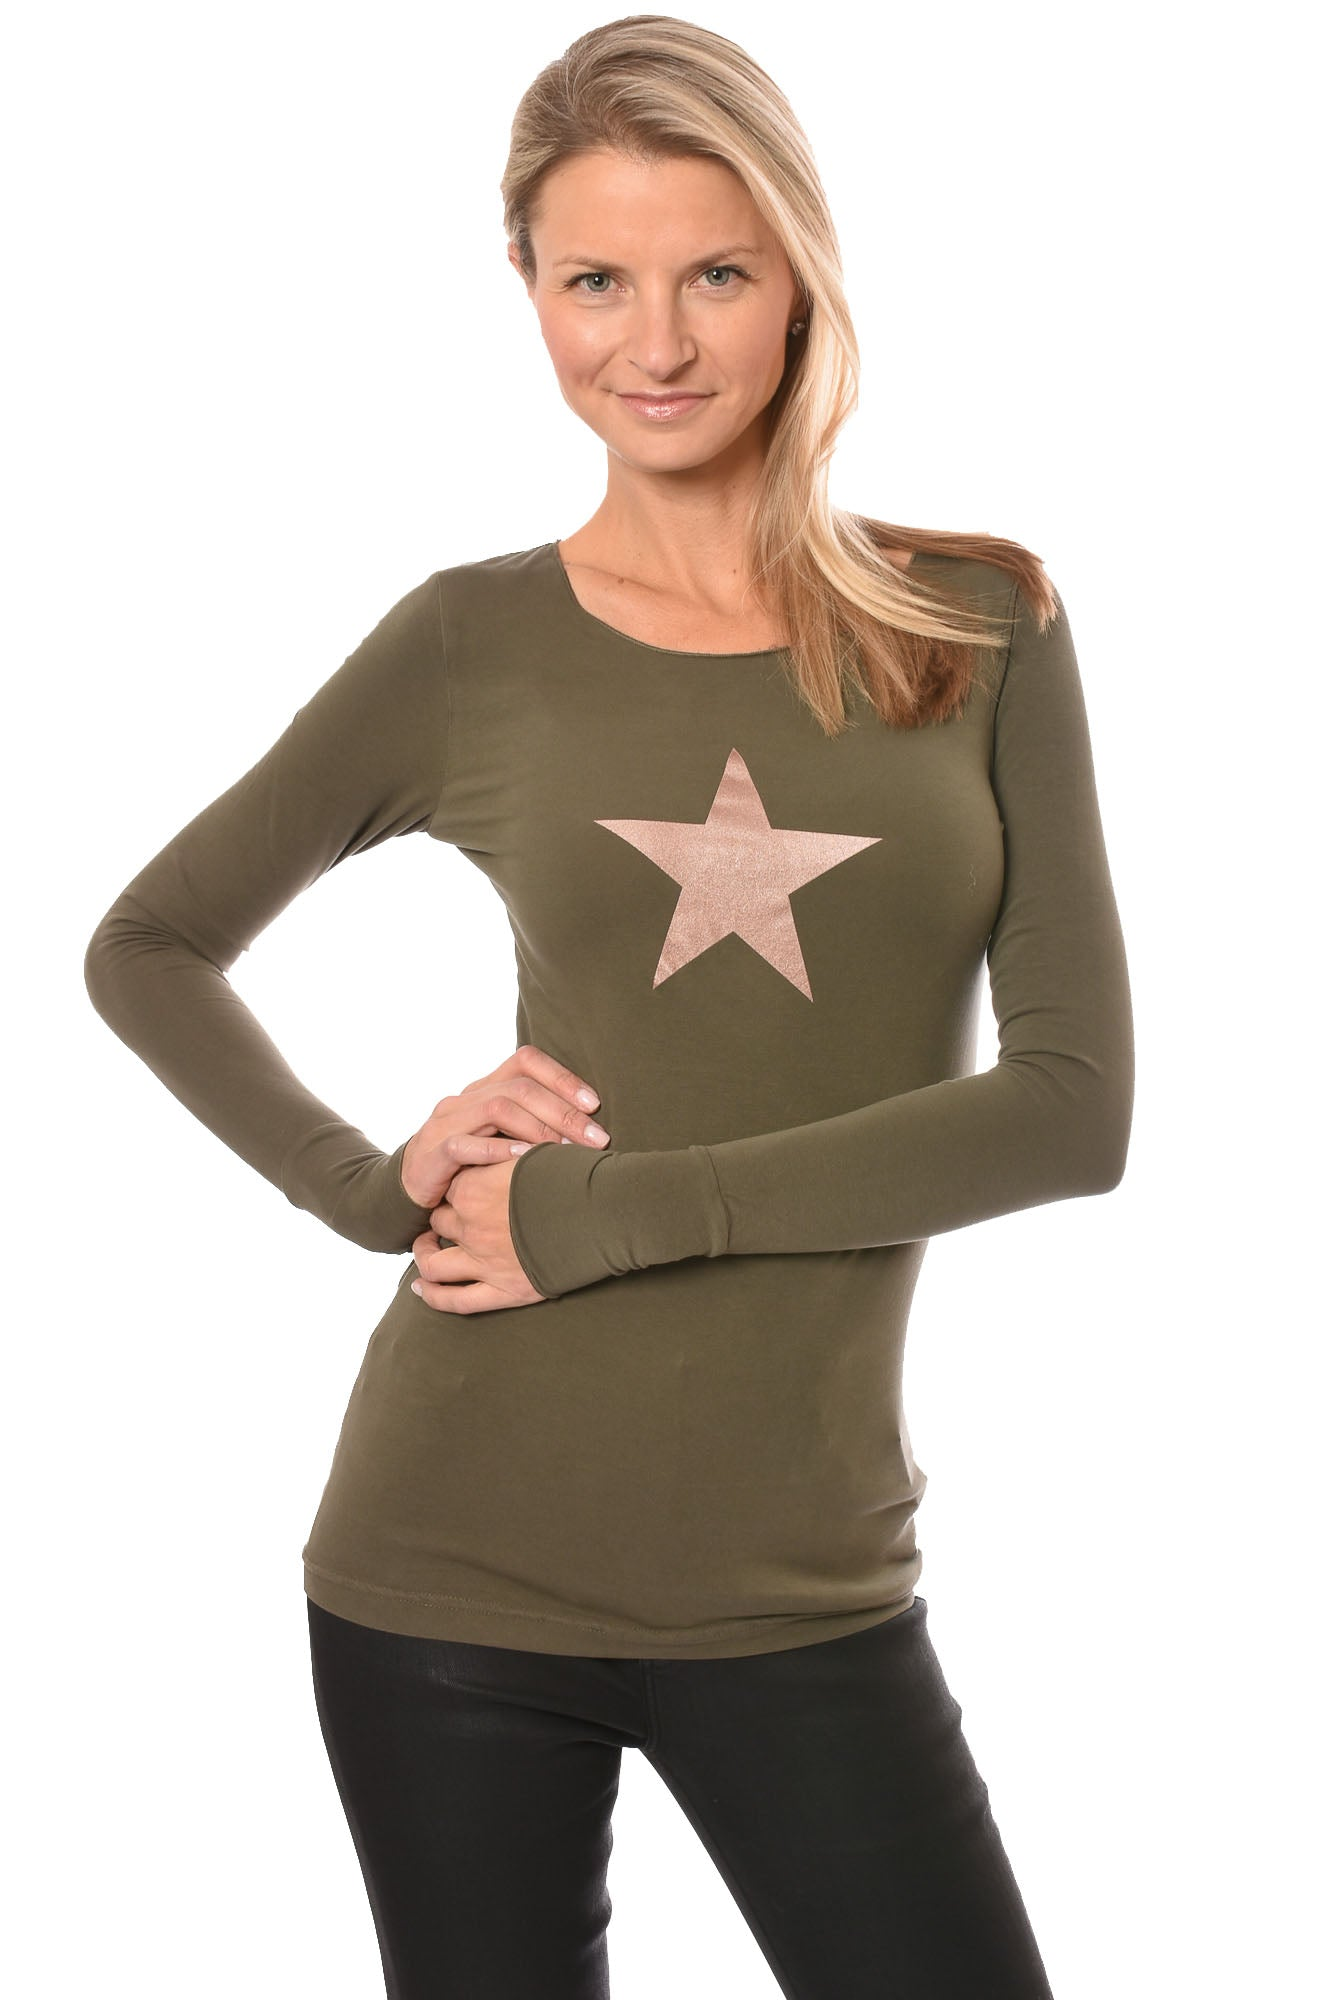 Hard Tail Forever - Long Sleeve Thumbhole W/Rose Gold Star (SL-143-501, Olive & w/Rose Gold Star)